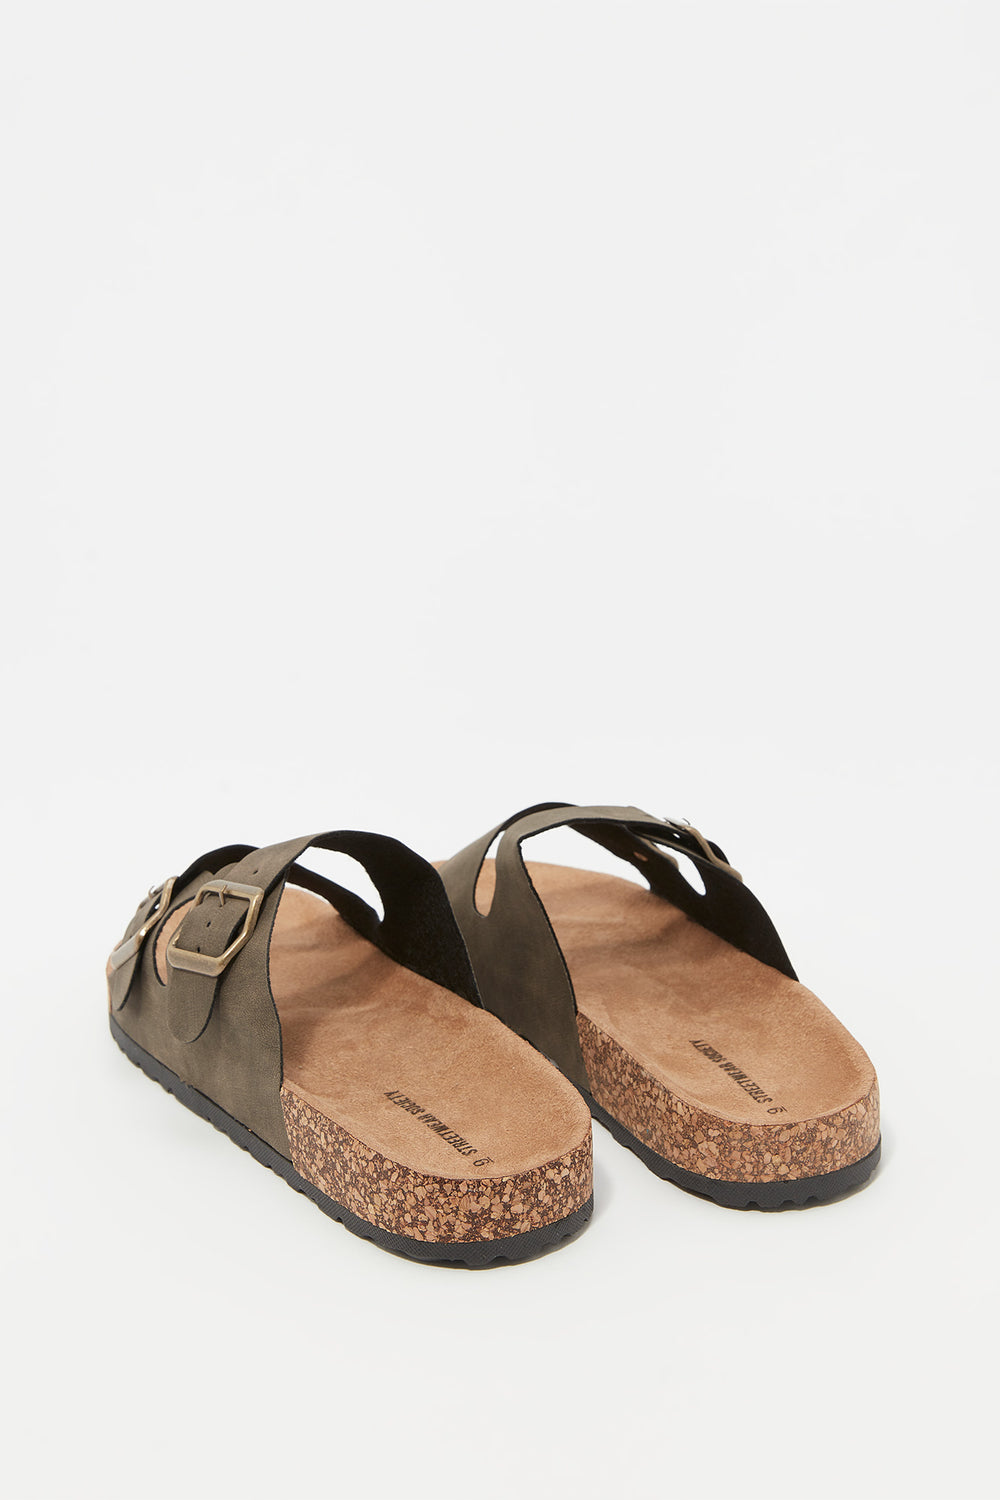 Faux-Suede Double Strap Cork Slip-On Sandal Dark Green